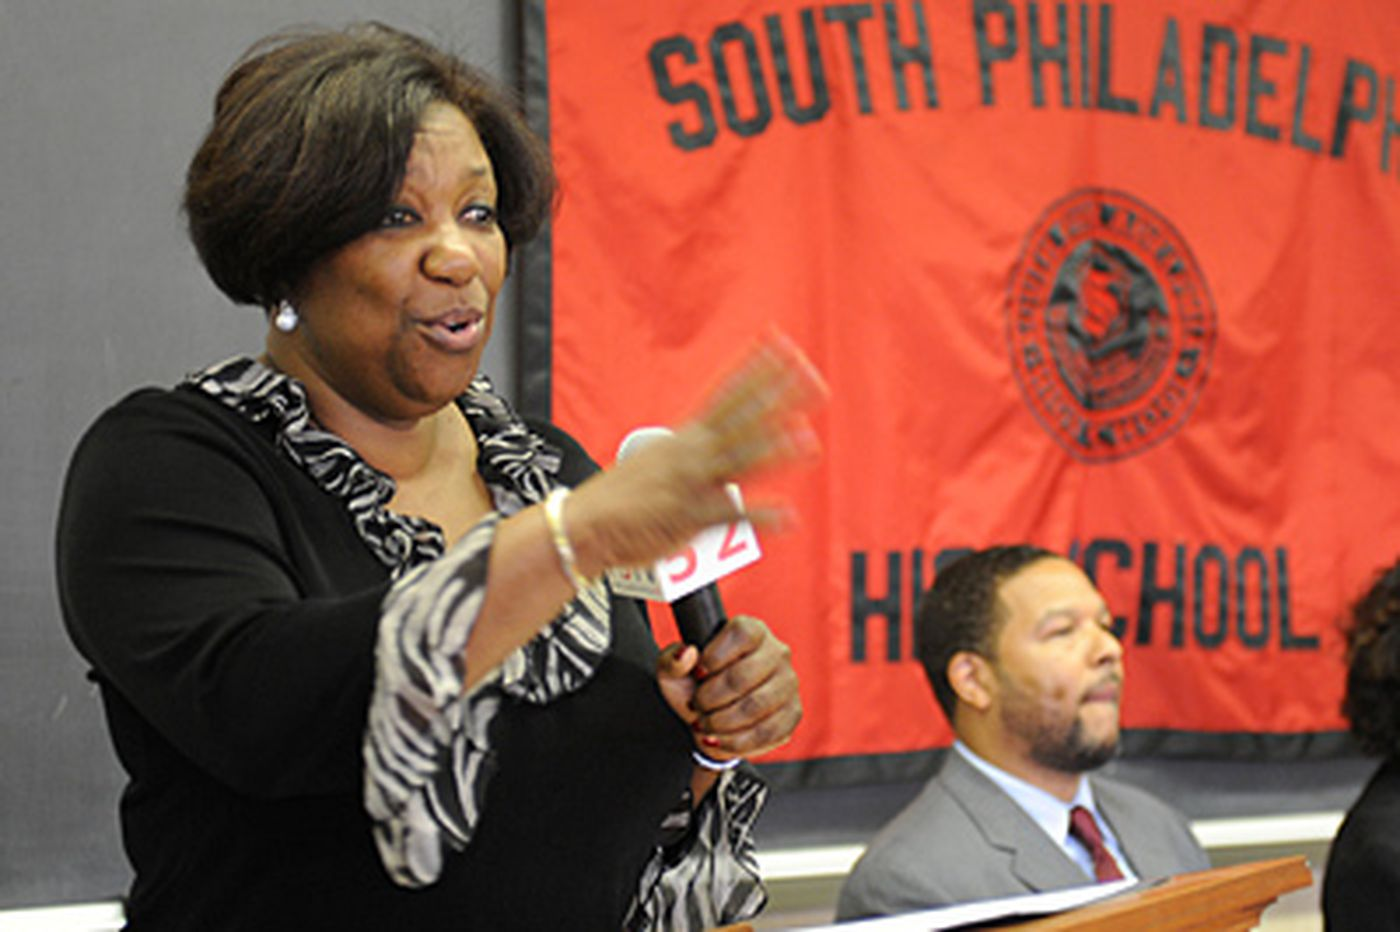 Ackerman focusing on the future in Philadelphia schools